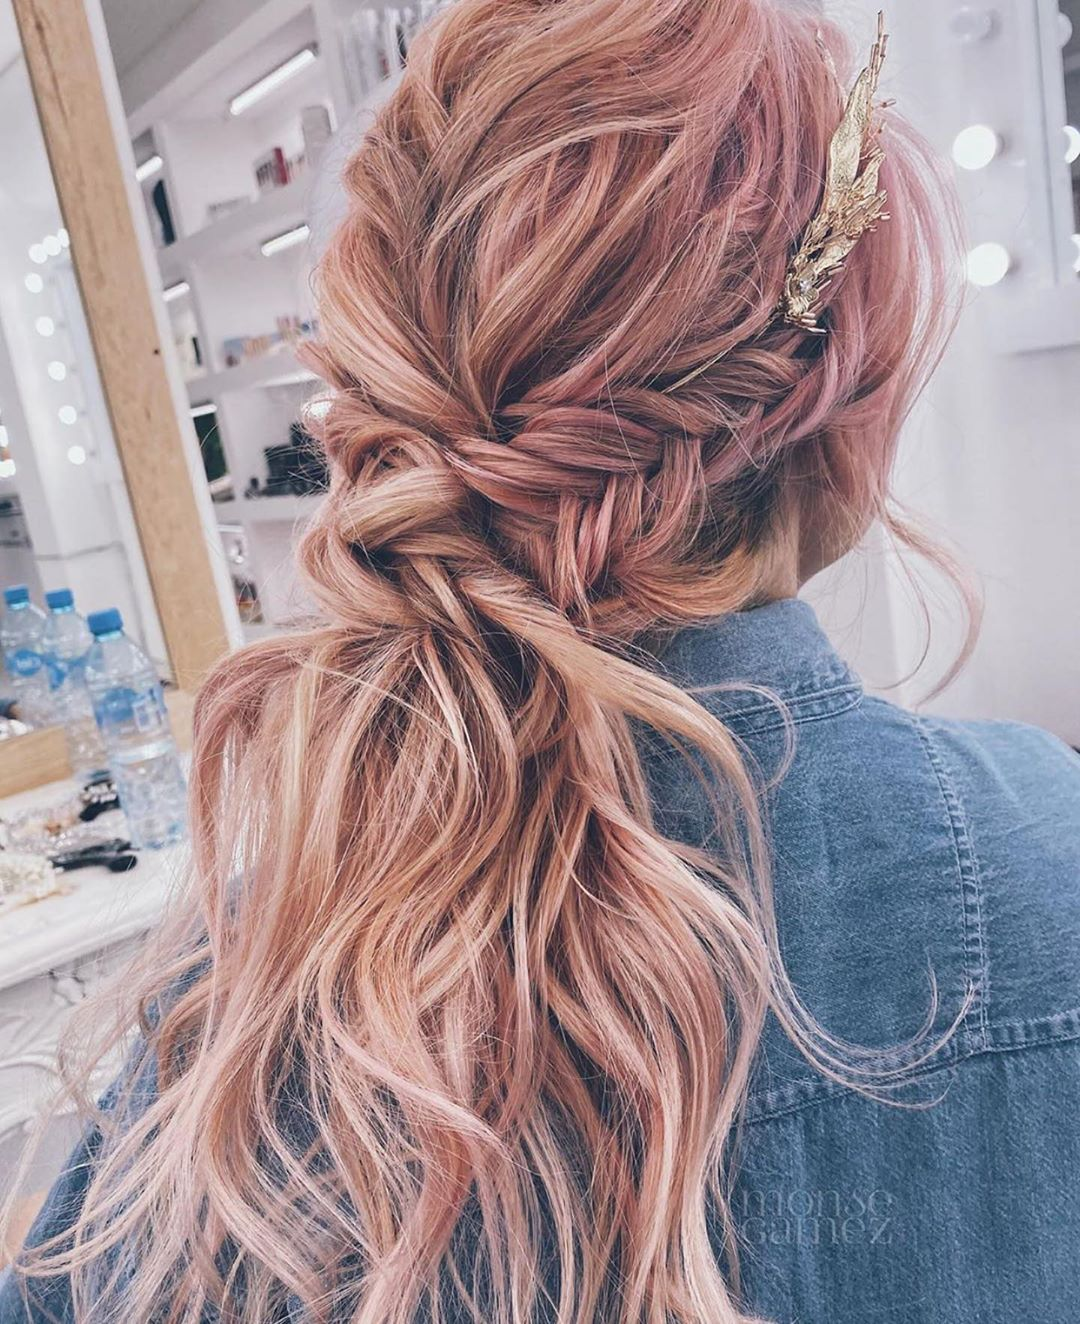 Twisted Ponytail in Boho Braid style